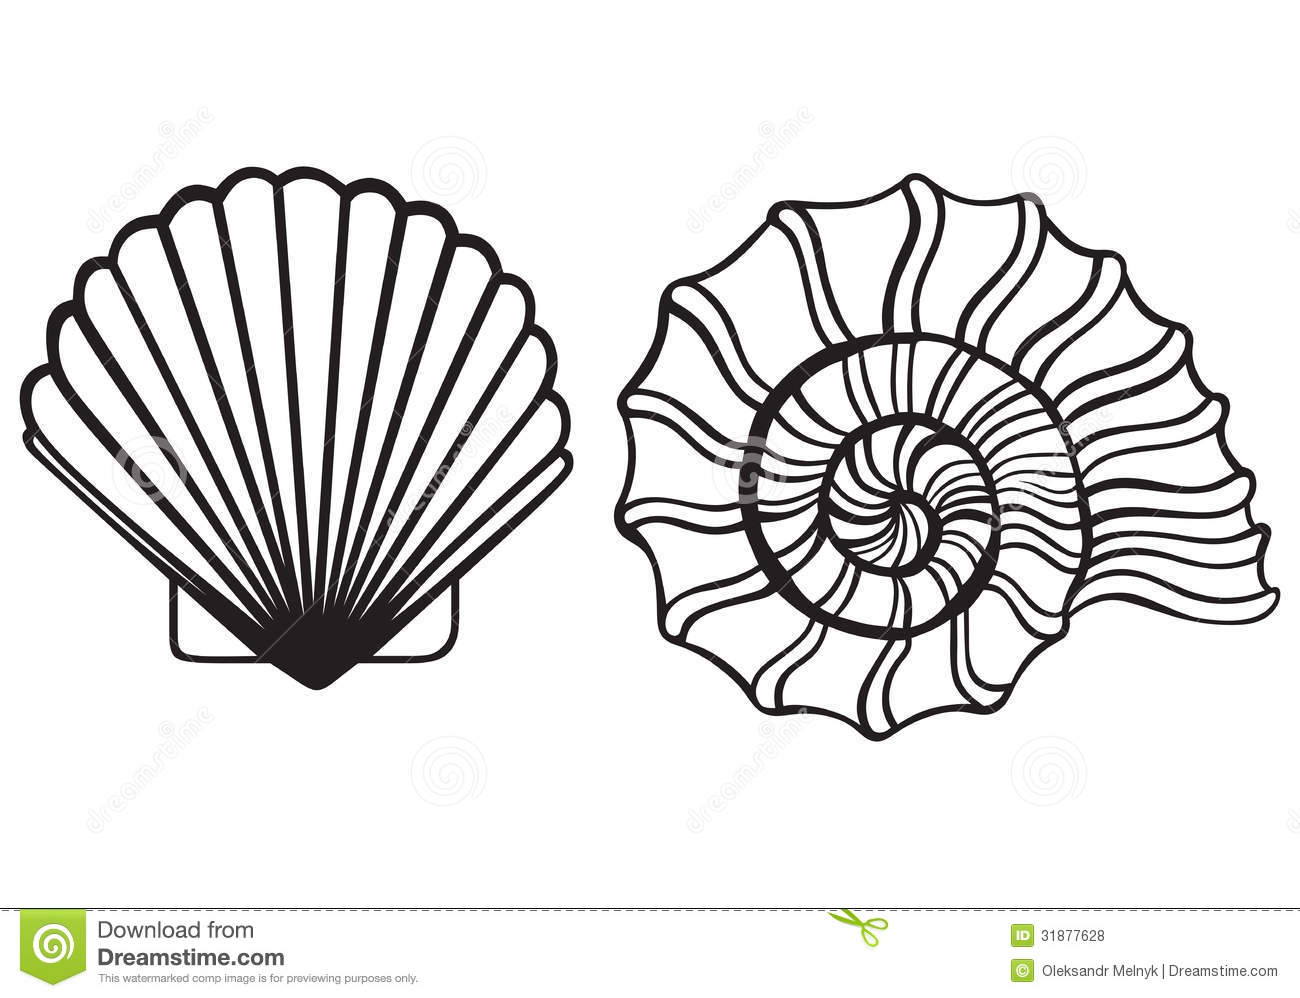 Free to use and share ocean floor clipart.